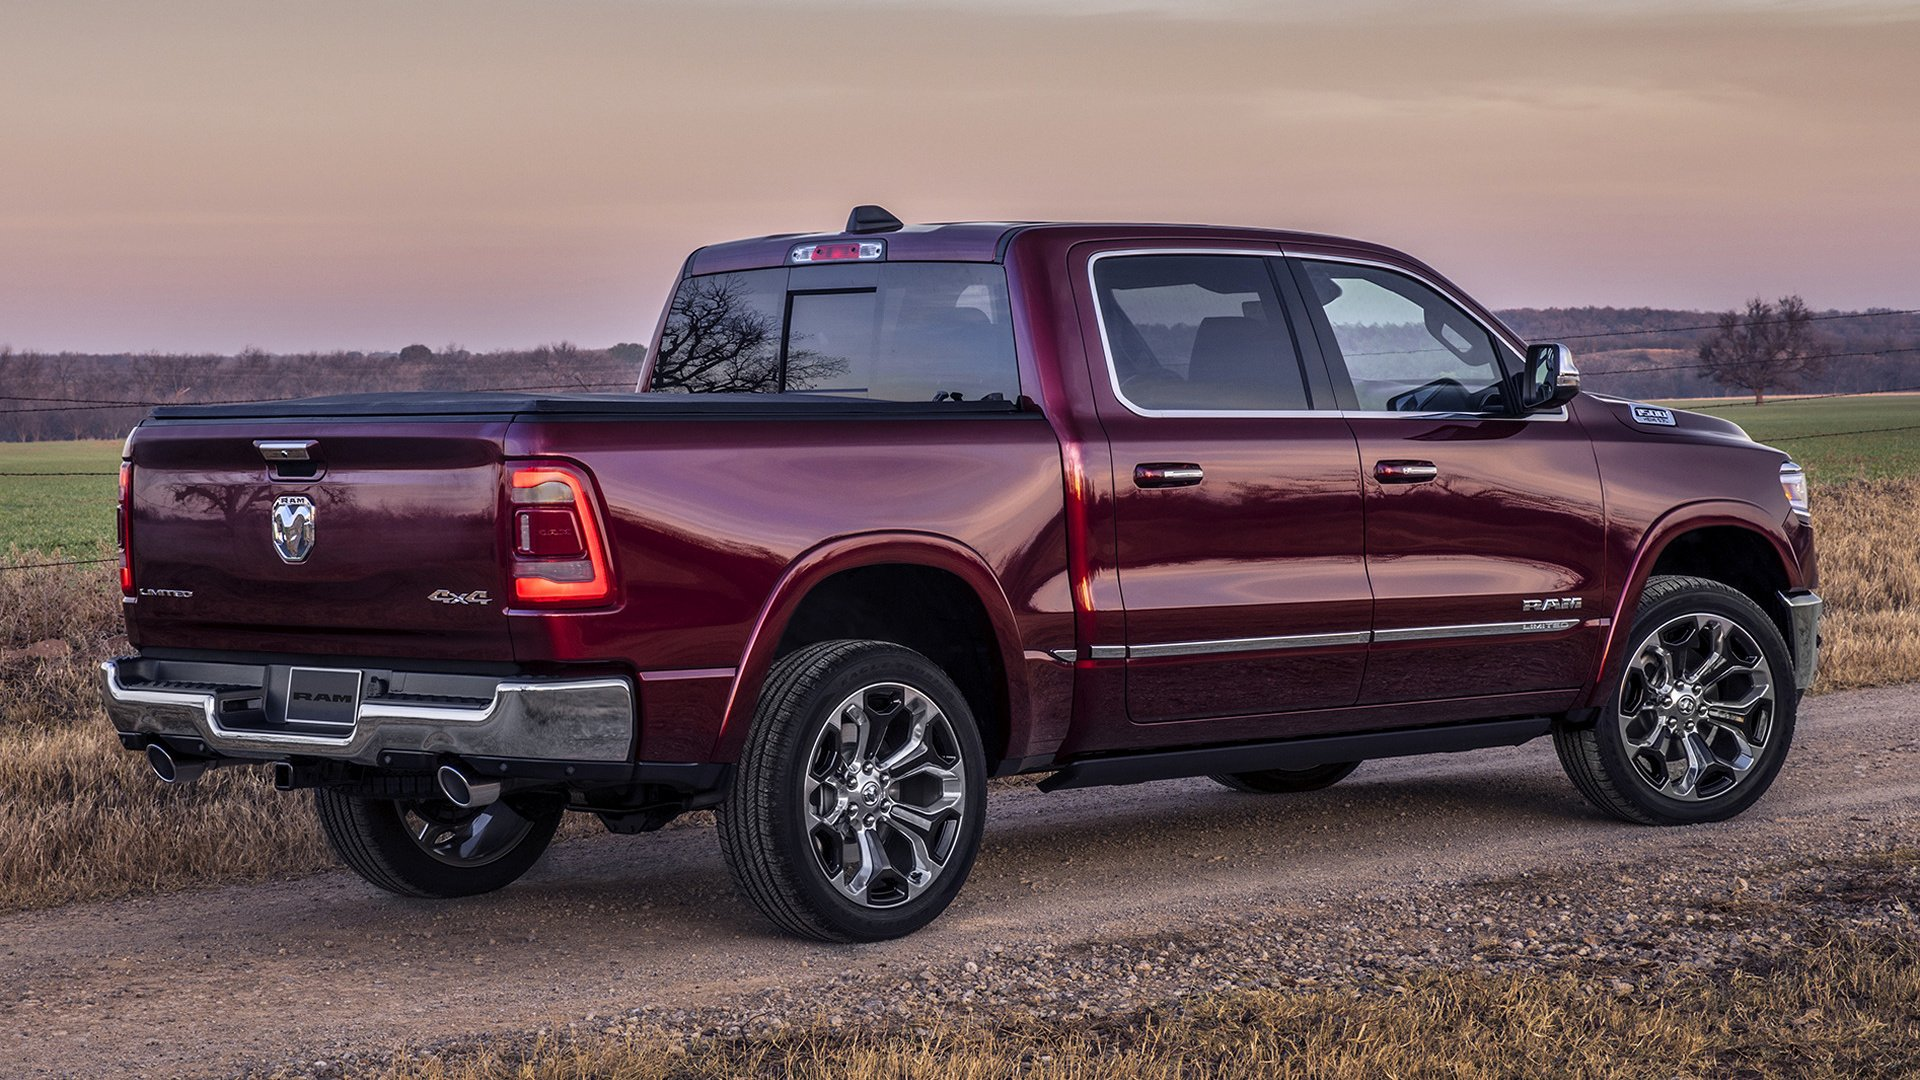 2019 Ram 1500 Limited Crew Cab Hd Wallpaper Background Image